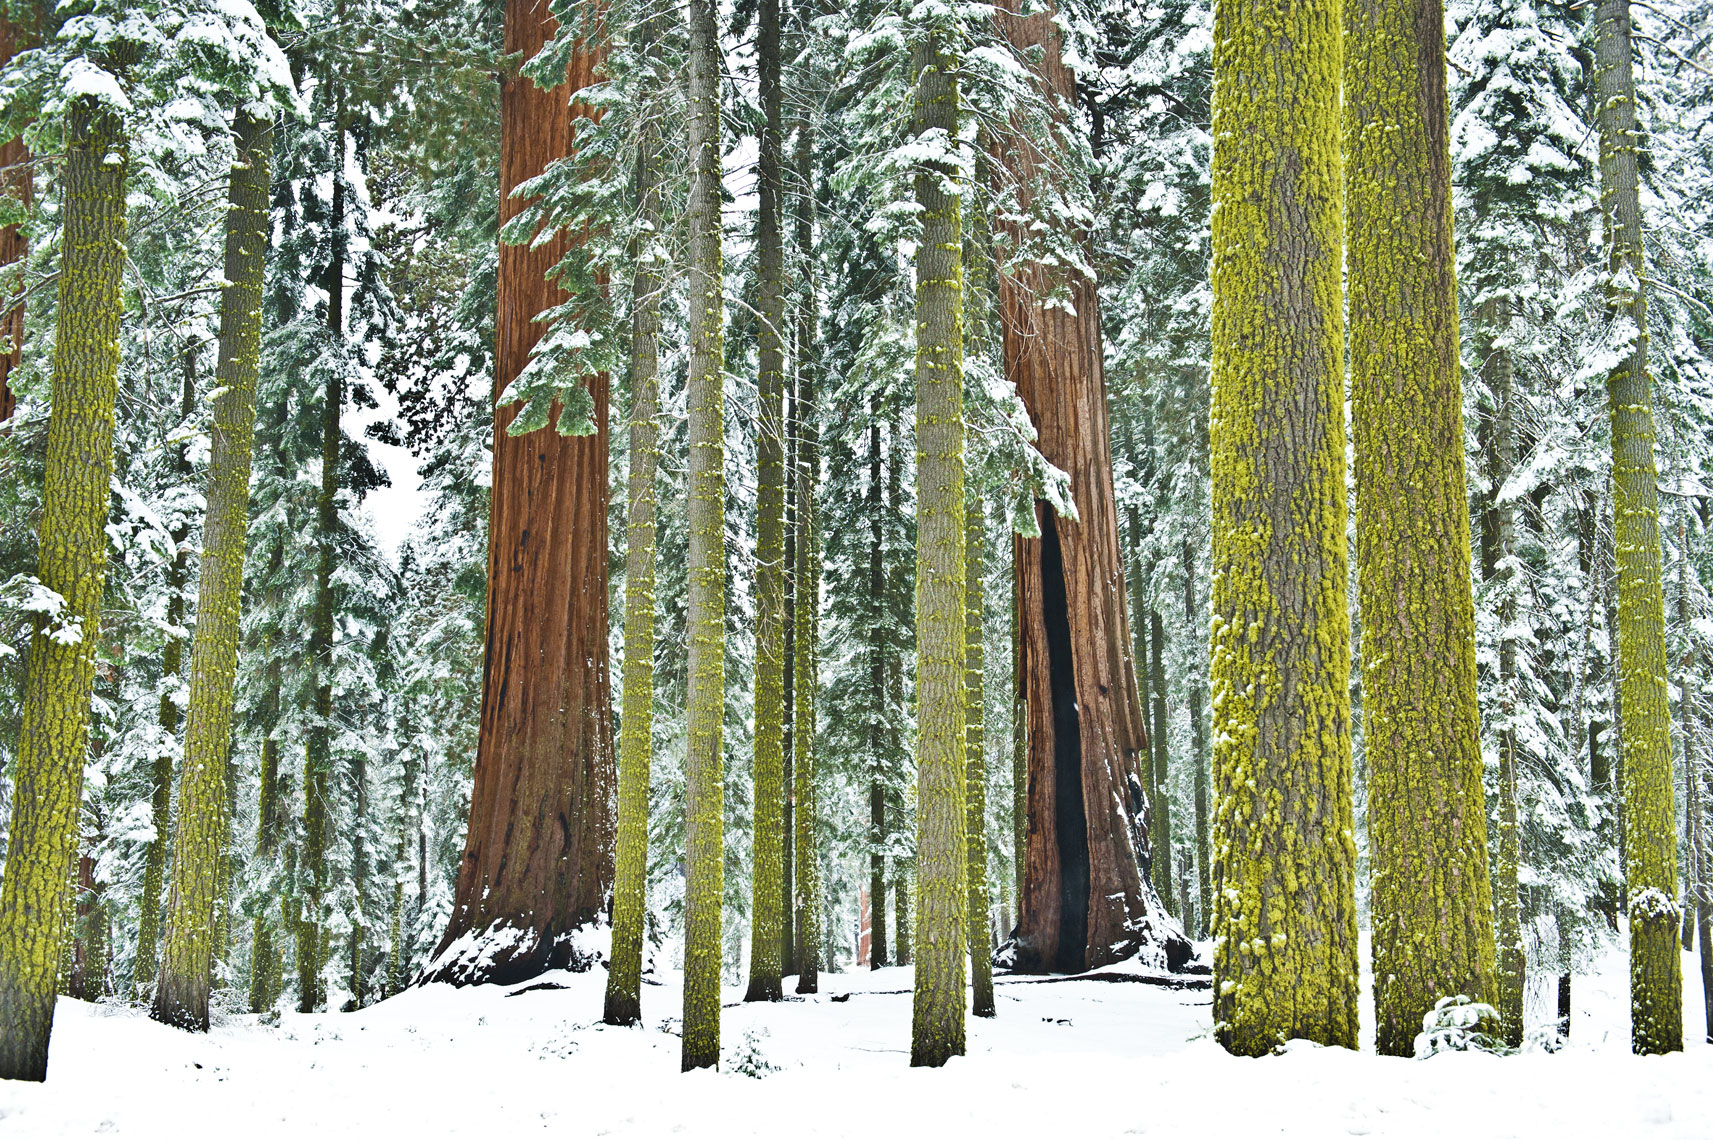 Sequoia and Kings Canyon National Park, California landscape photography by Mike Morgan.